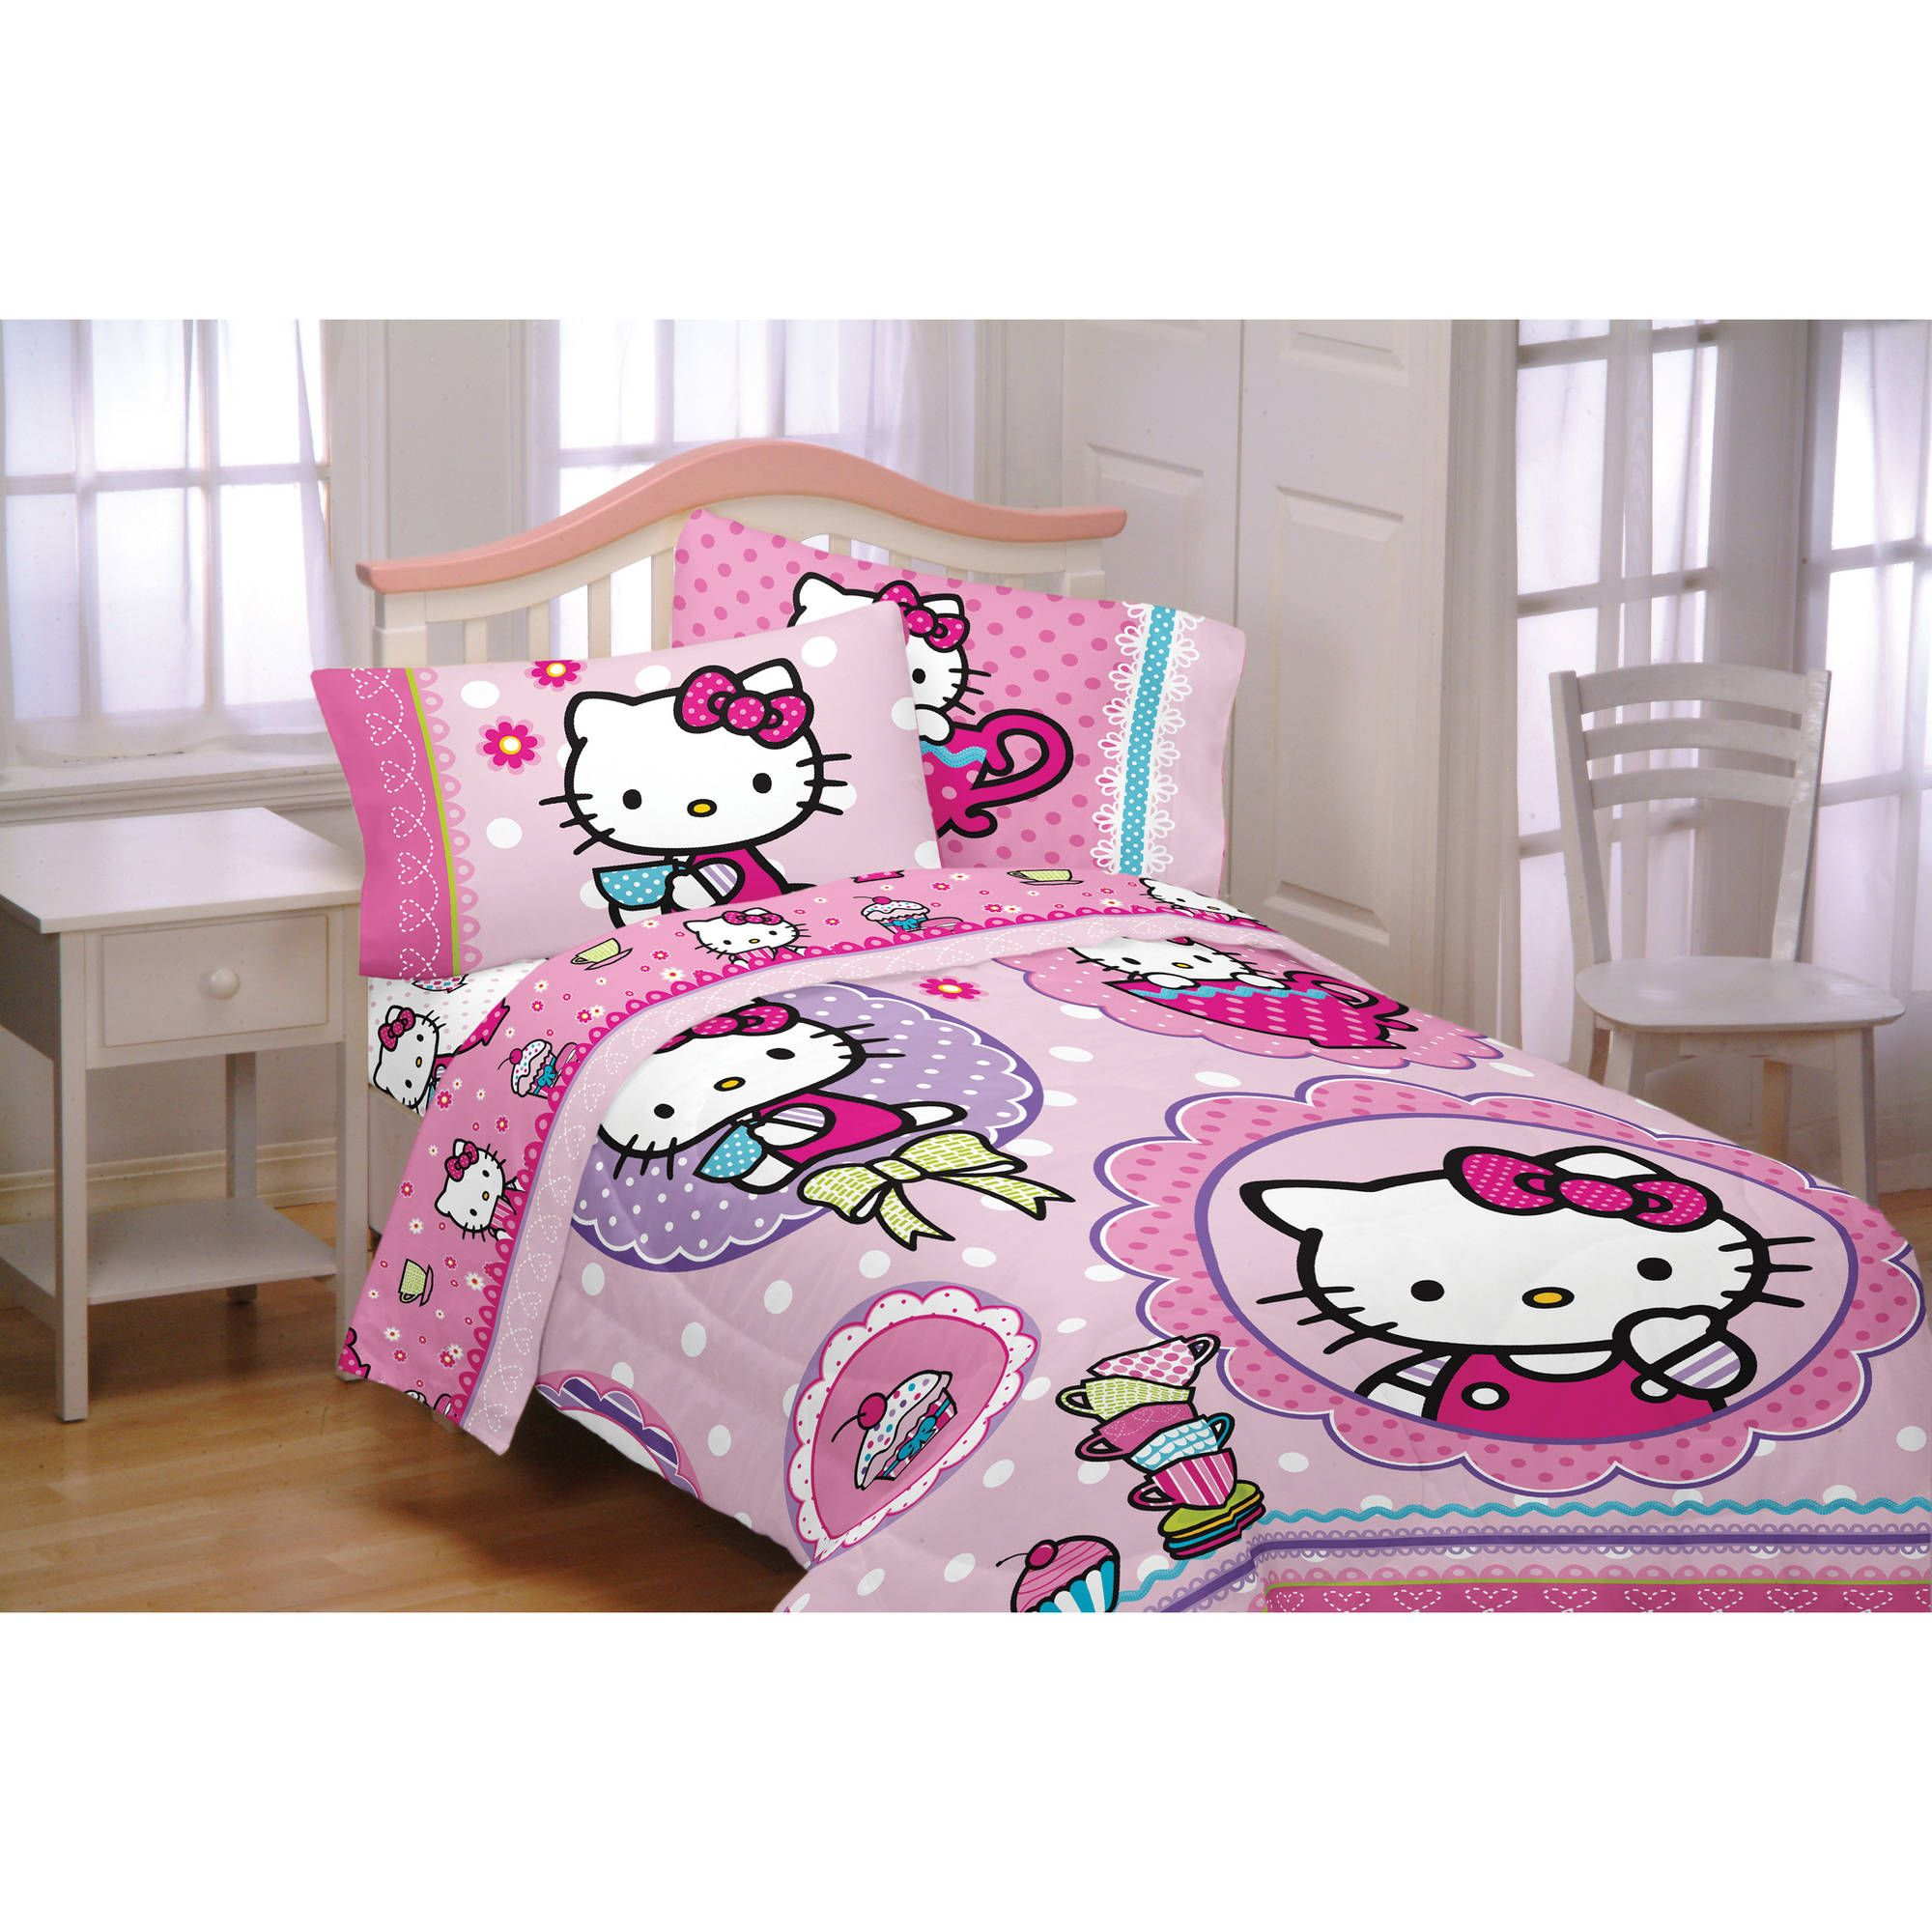 bag a rooms sleepovers sleepover away kids beds in fold bed pin